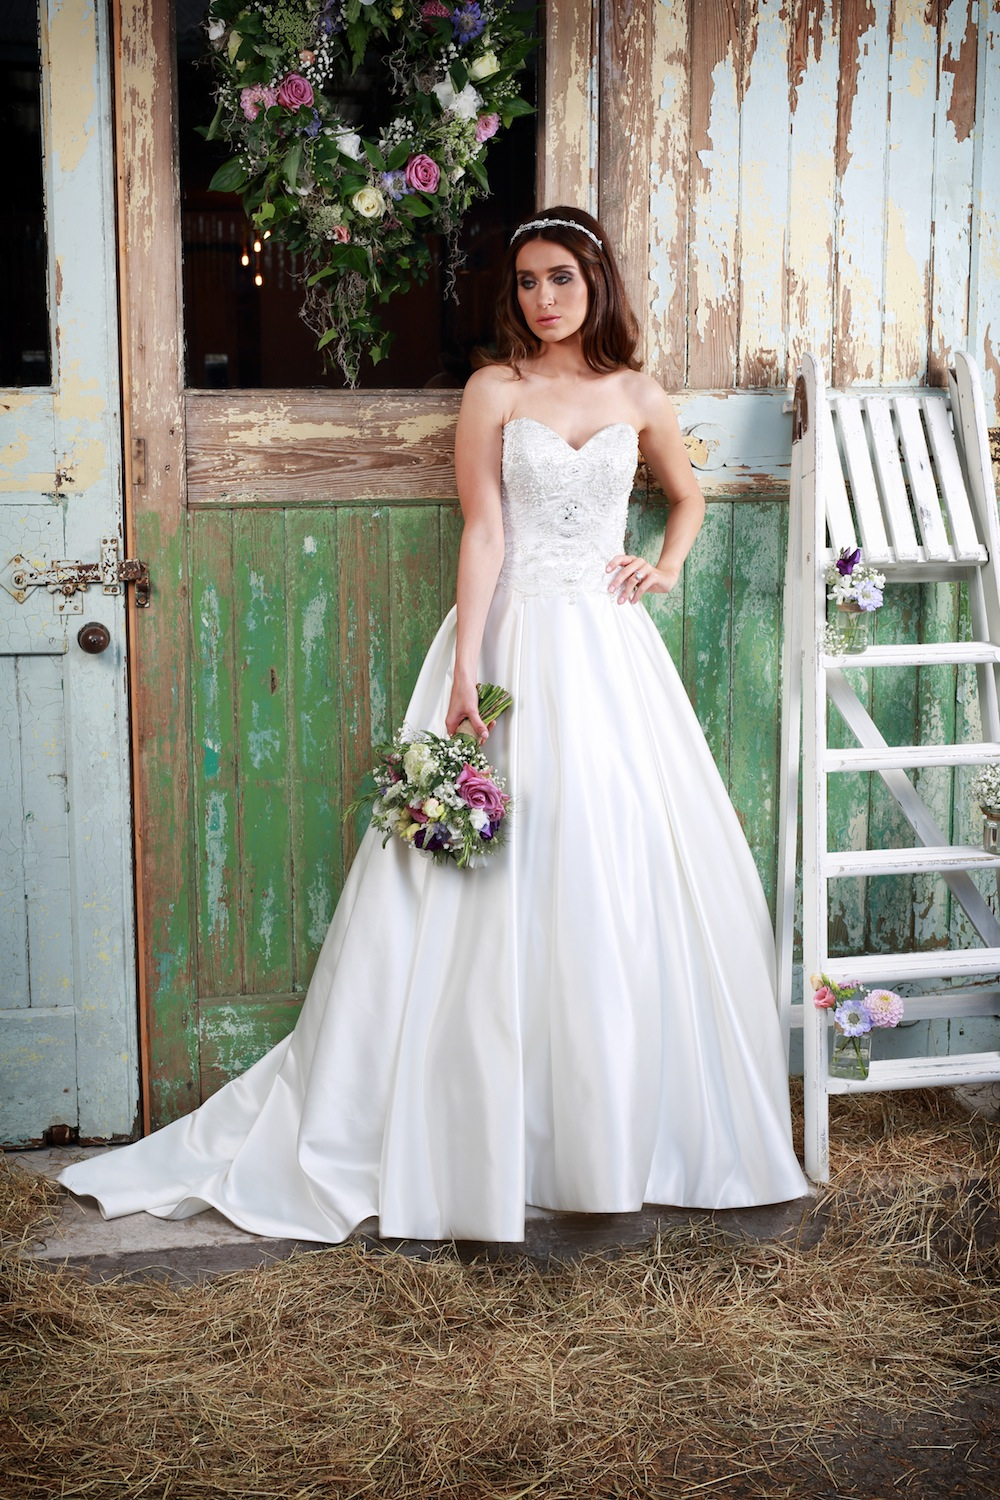 Amanda Wyatt Wedding Gown : Sapphire - beading on this bodice sparkles and the lovely hanging pearls on the waist give it lovely definition to the waistline. The full skirt can be worn either with or without a petticoat.